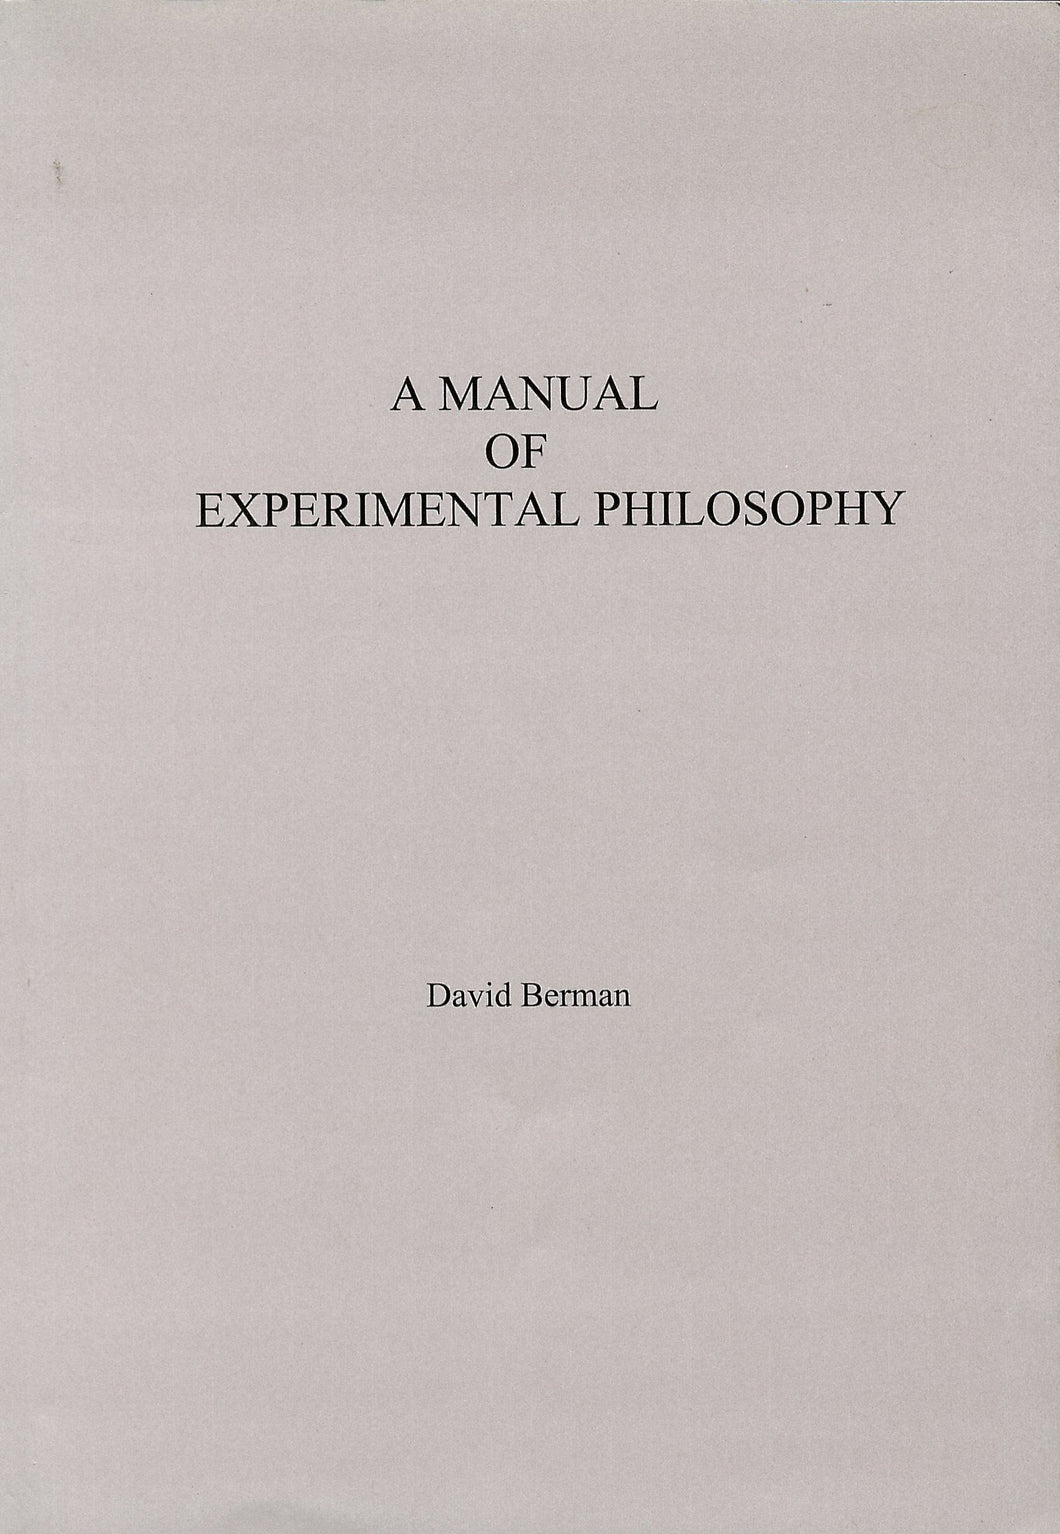 A Manual of Experimental Philosophy